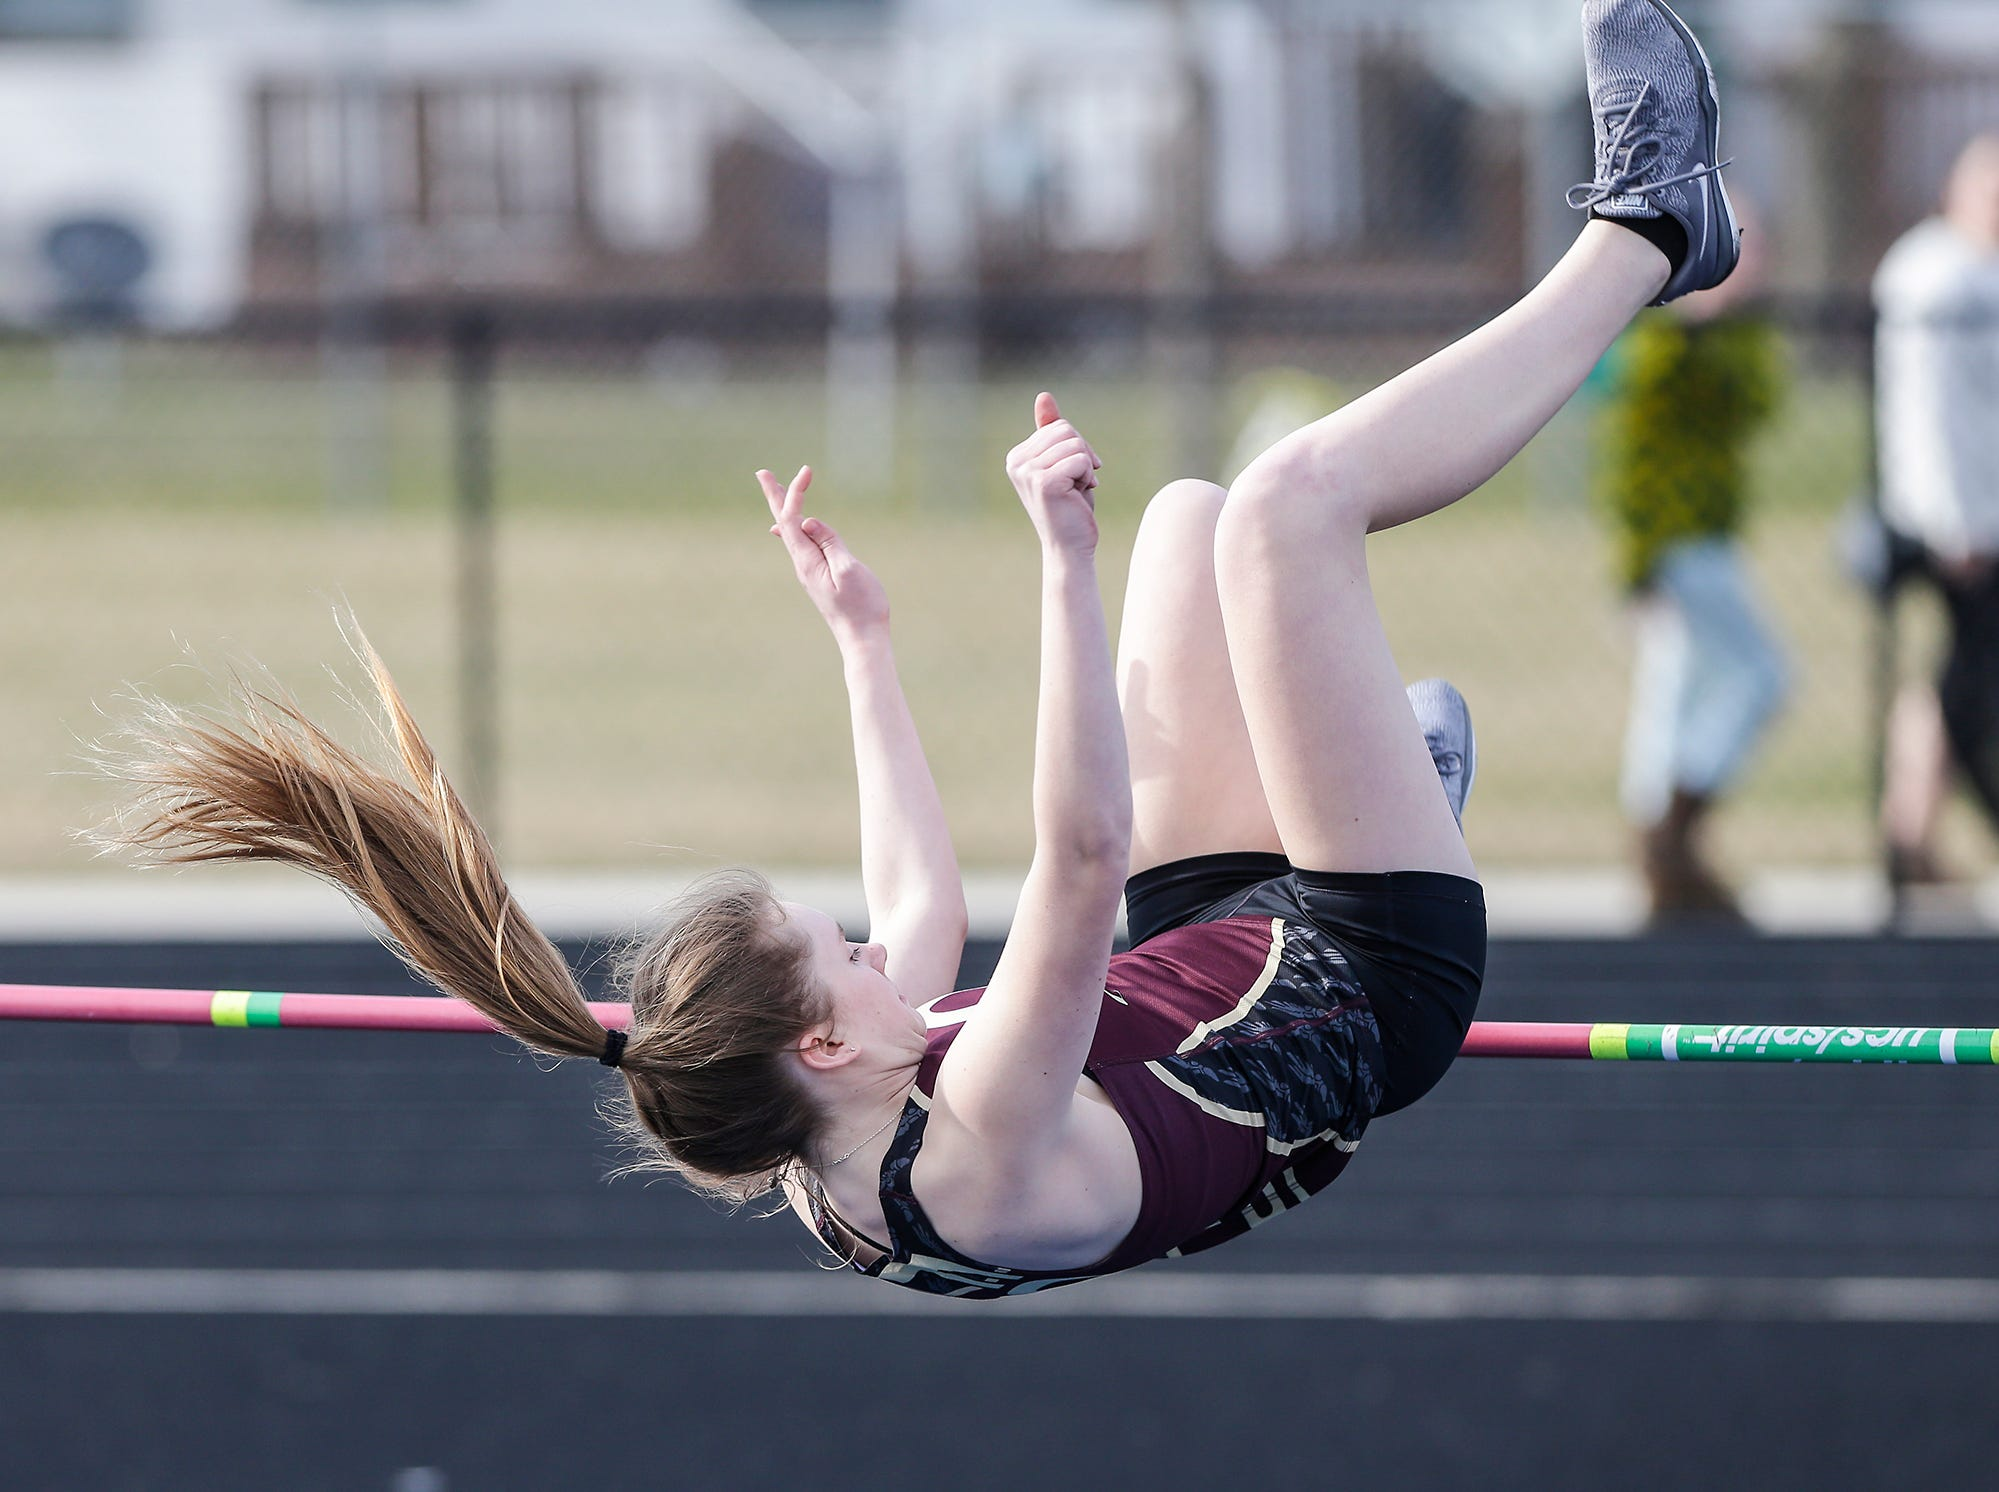 Omro High School's Lauren Koonce takes part in the high jump Tuesday, April 16, 2019 at North Fond du Lac High School in North Fond du Lac, Wis. Doug Raflik/USA TODAY NETWORK-Wisconsin